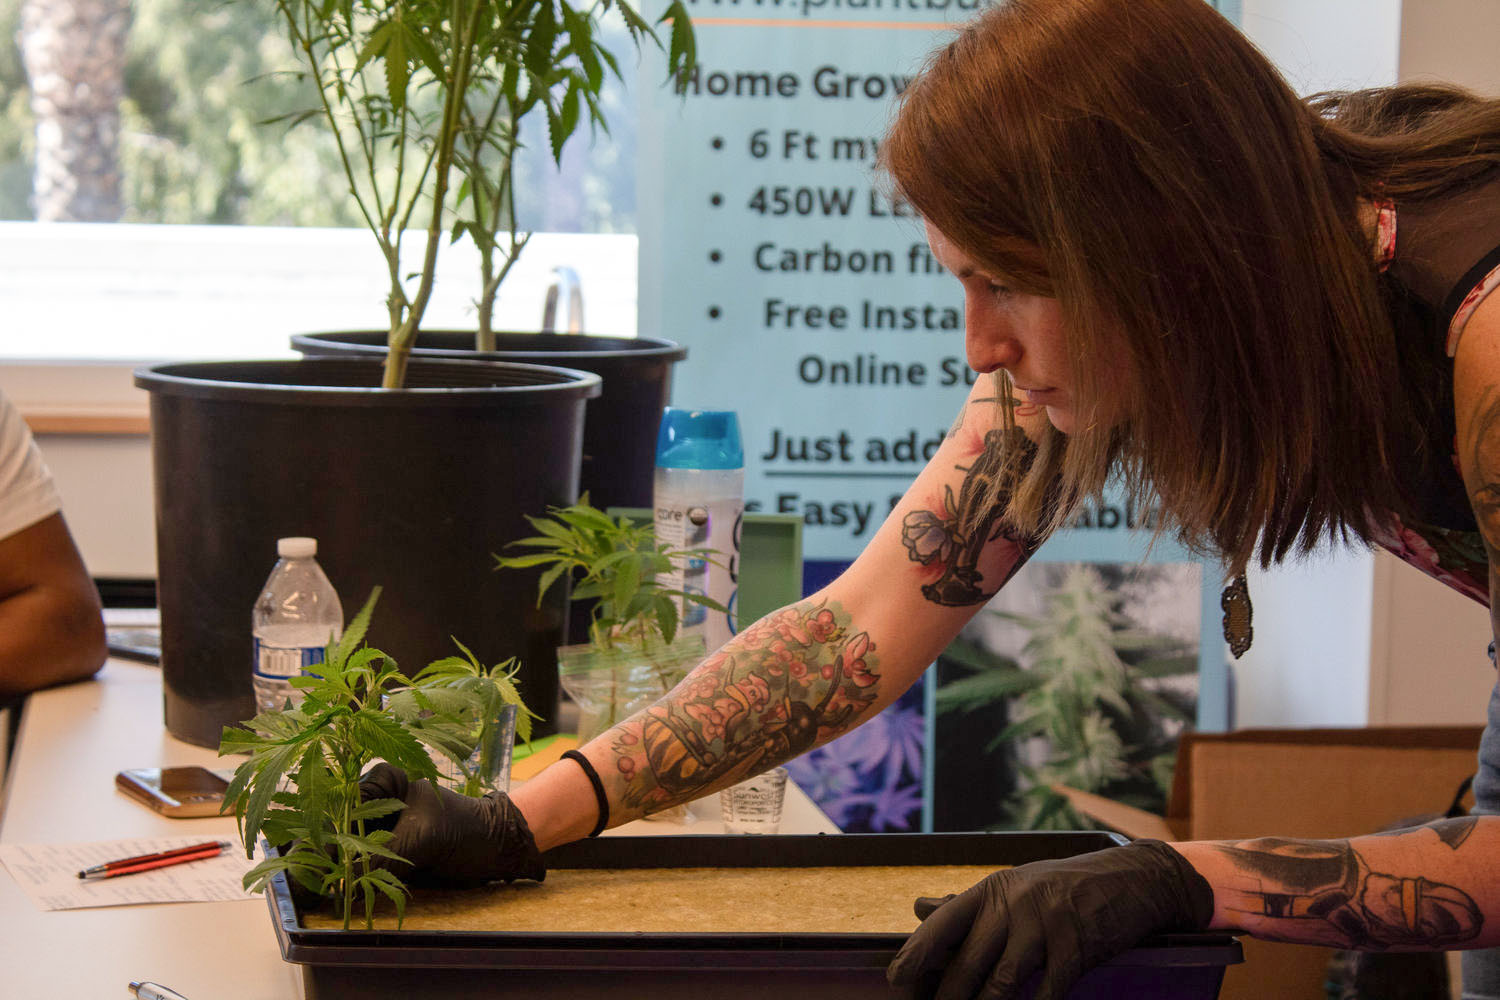 """Alyssa Sullivan during Plant Buddies' educational event on growing cannabis at home. Hosted by the Santa Monica Public library on March 10, 2019, in Santa Monica, California. """"I think as far as flower is concerned I think it's important that people be growing their own flower just to verify what's in it, you know there's so many heavy chemicals in the world that so many cultivators are still using to this day If you're growing your own you have complete control over everything that's going into the plant."""" Photo by Danica Creahan."""